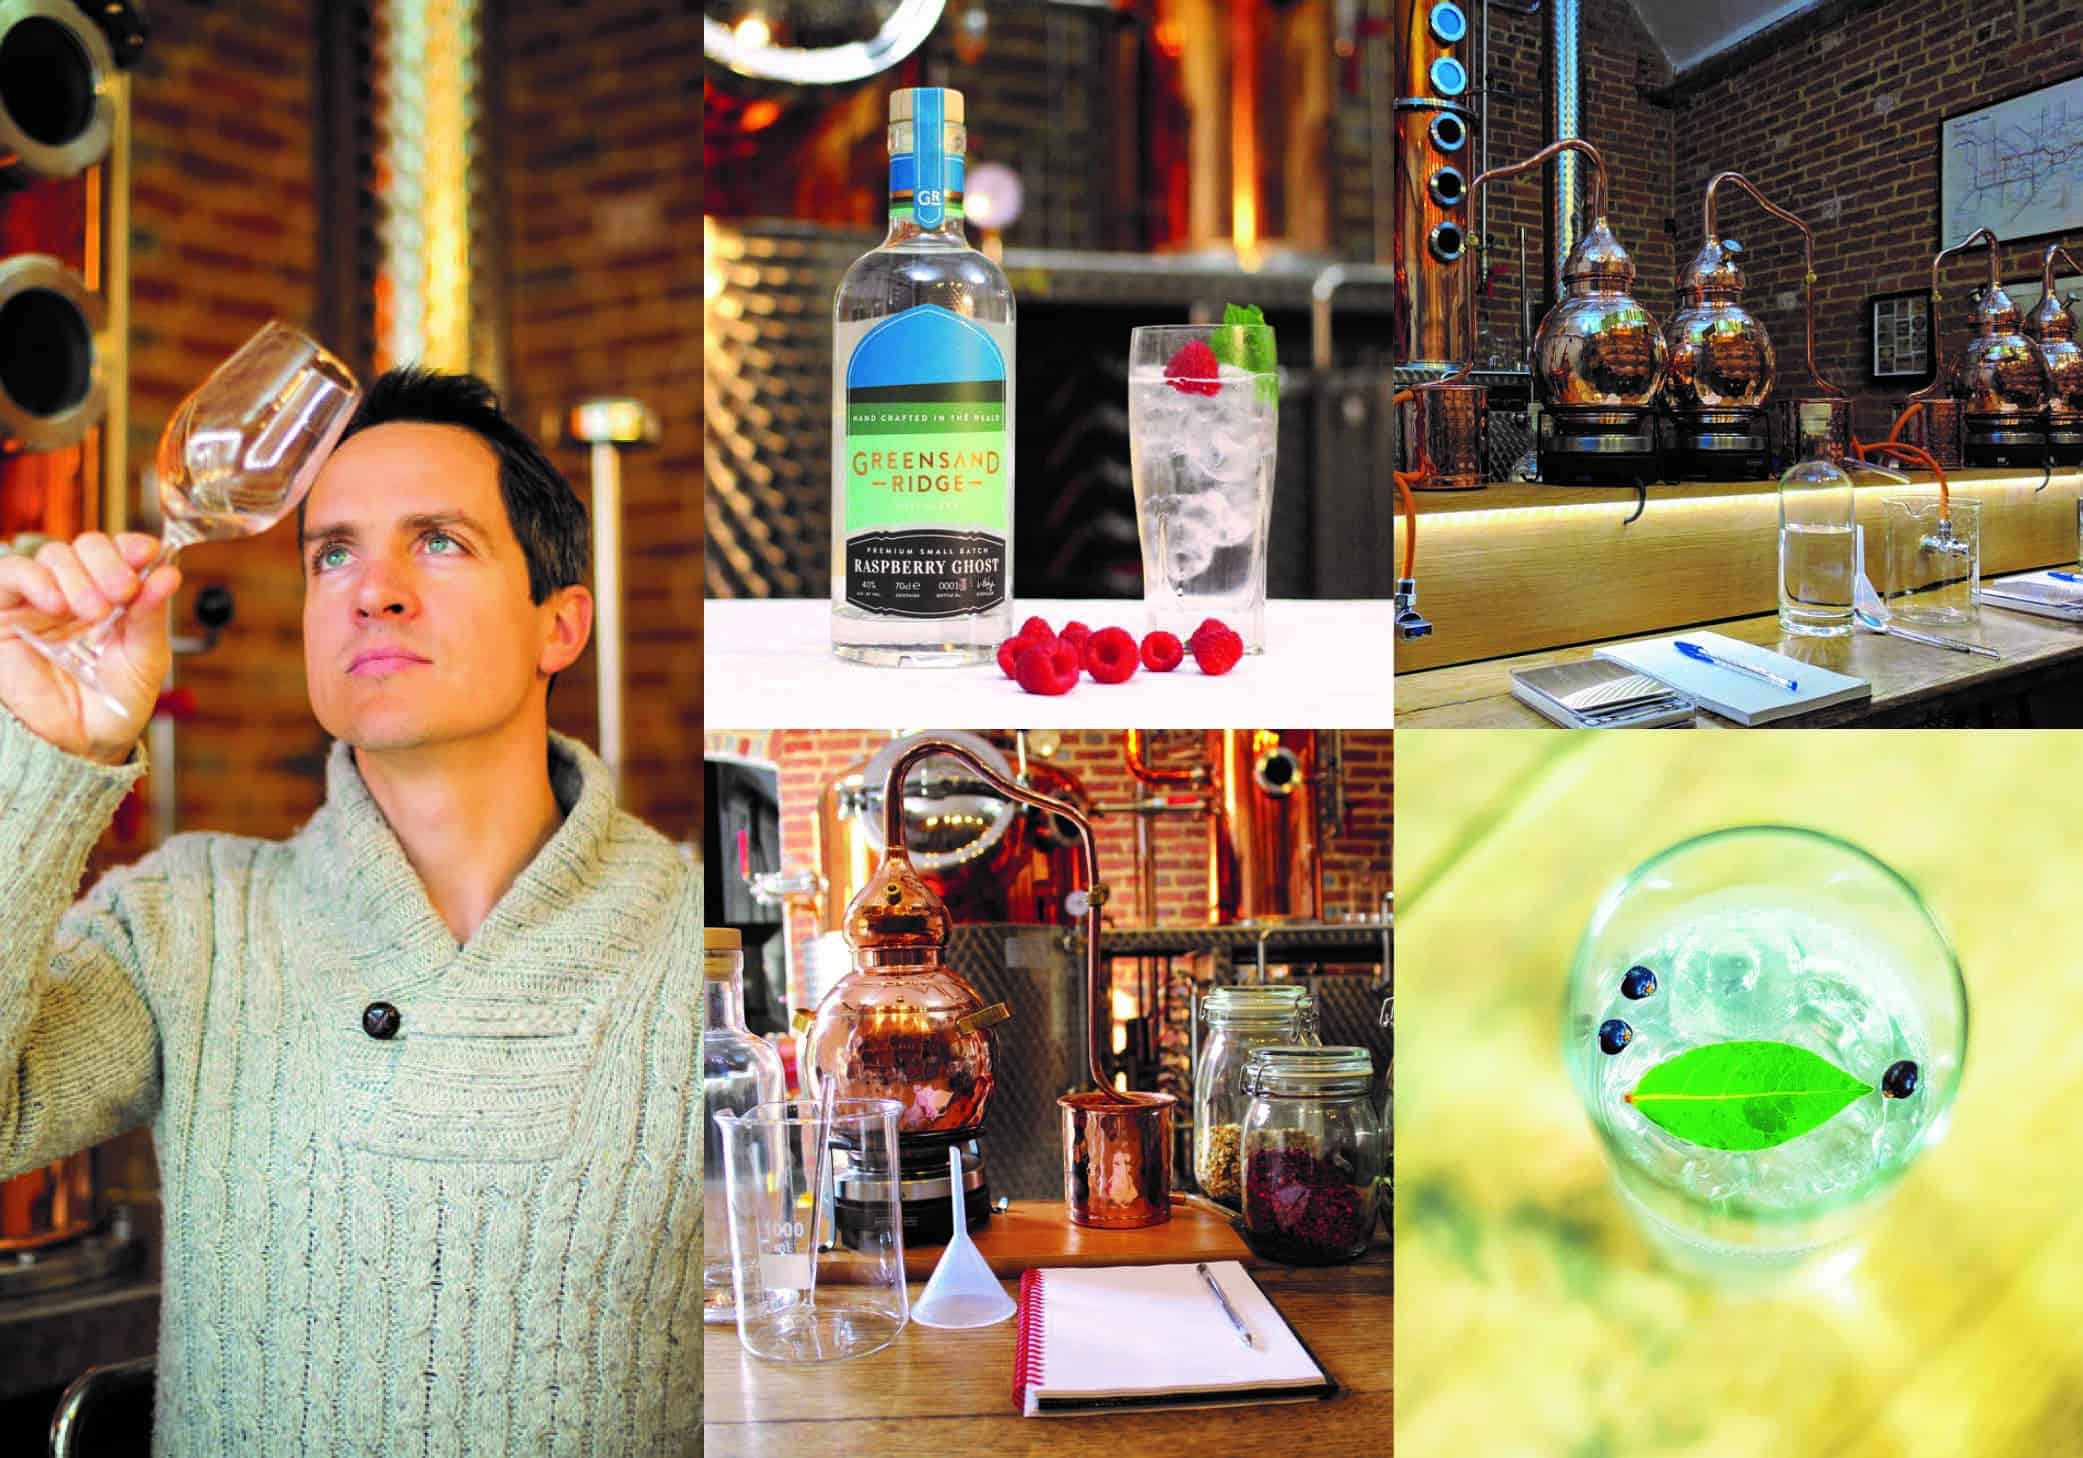 Greensand Ridge gin cocktails and distillery